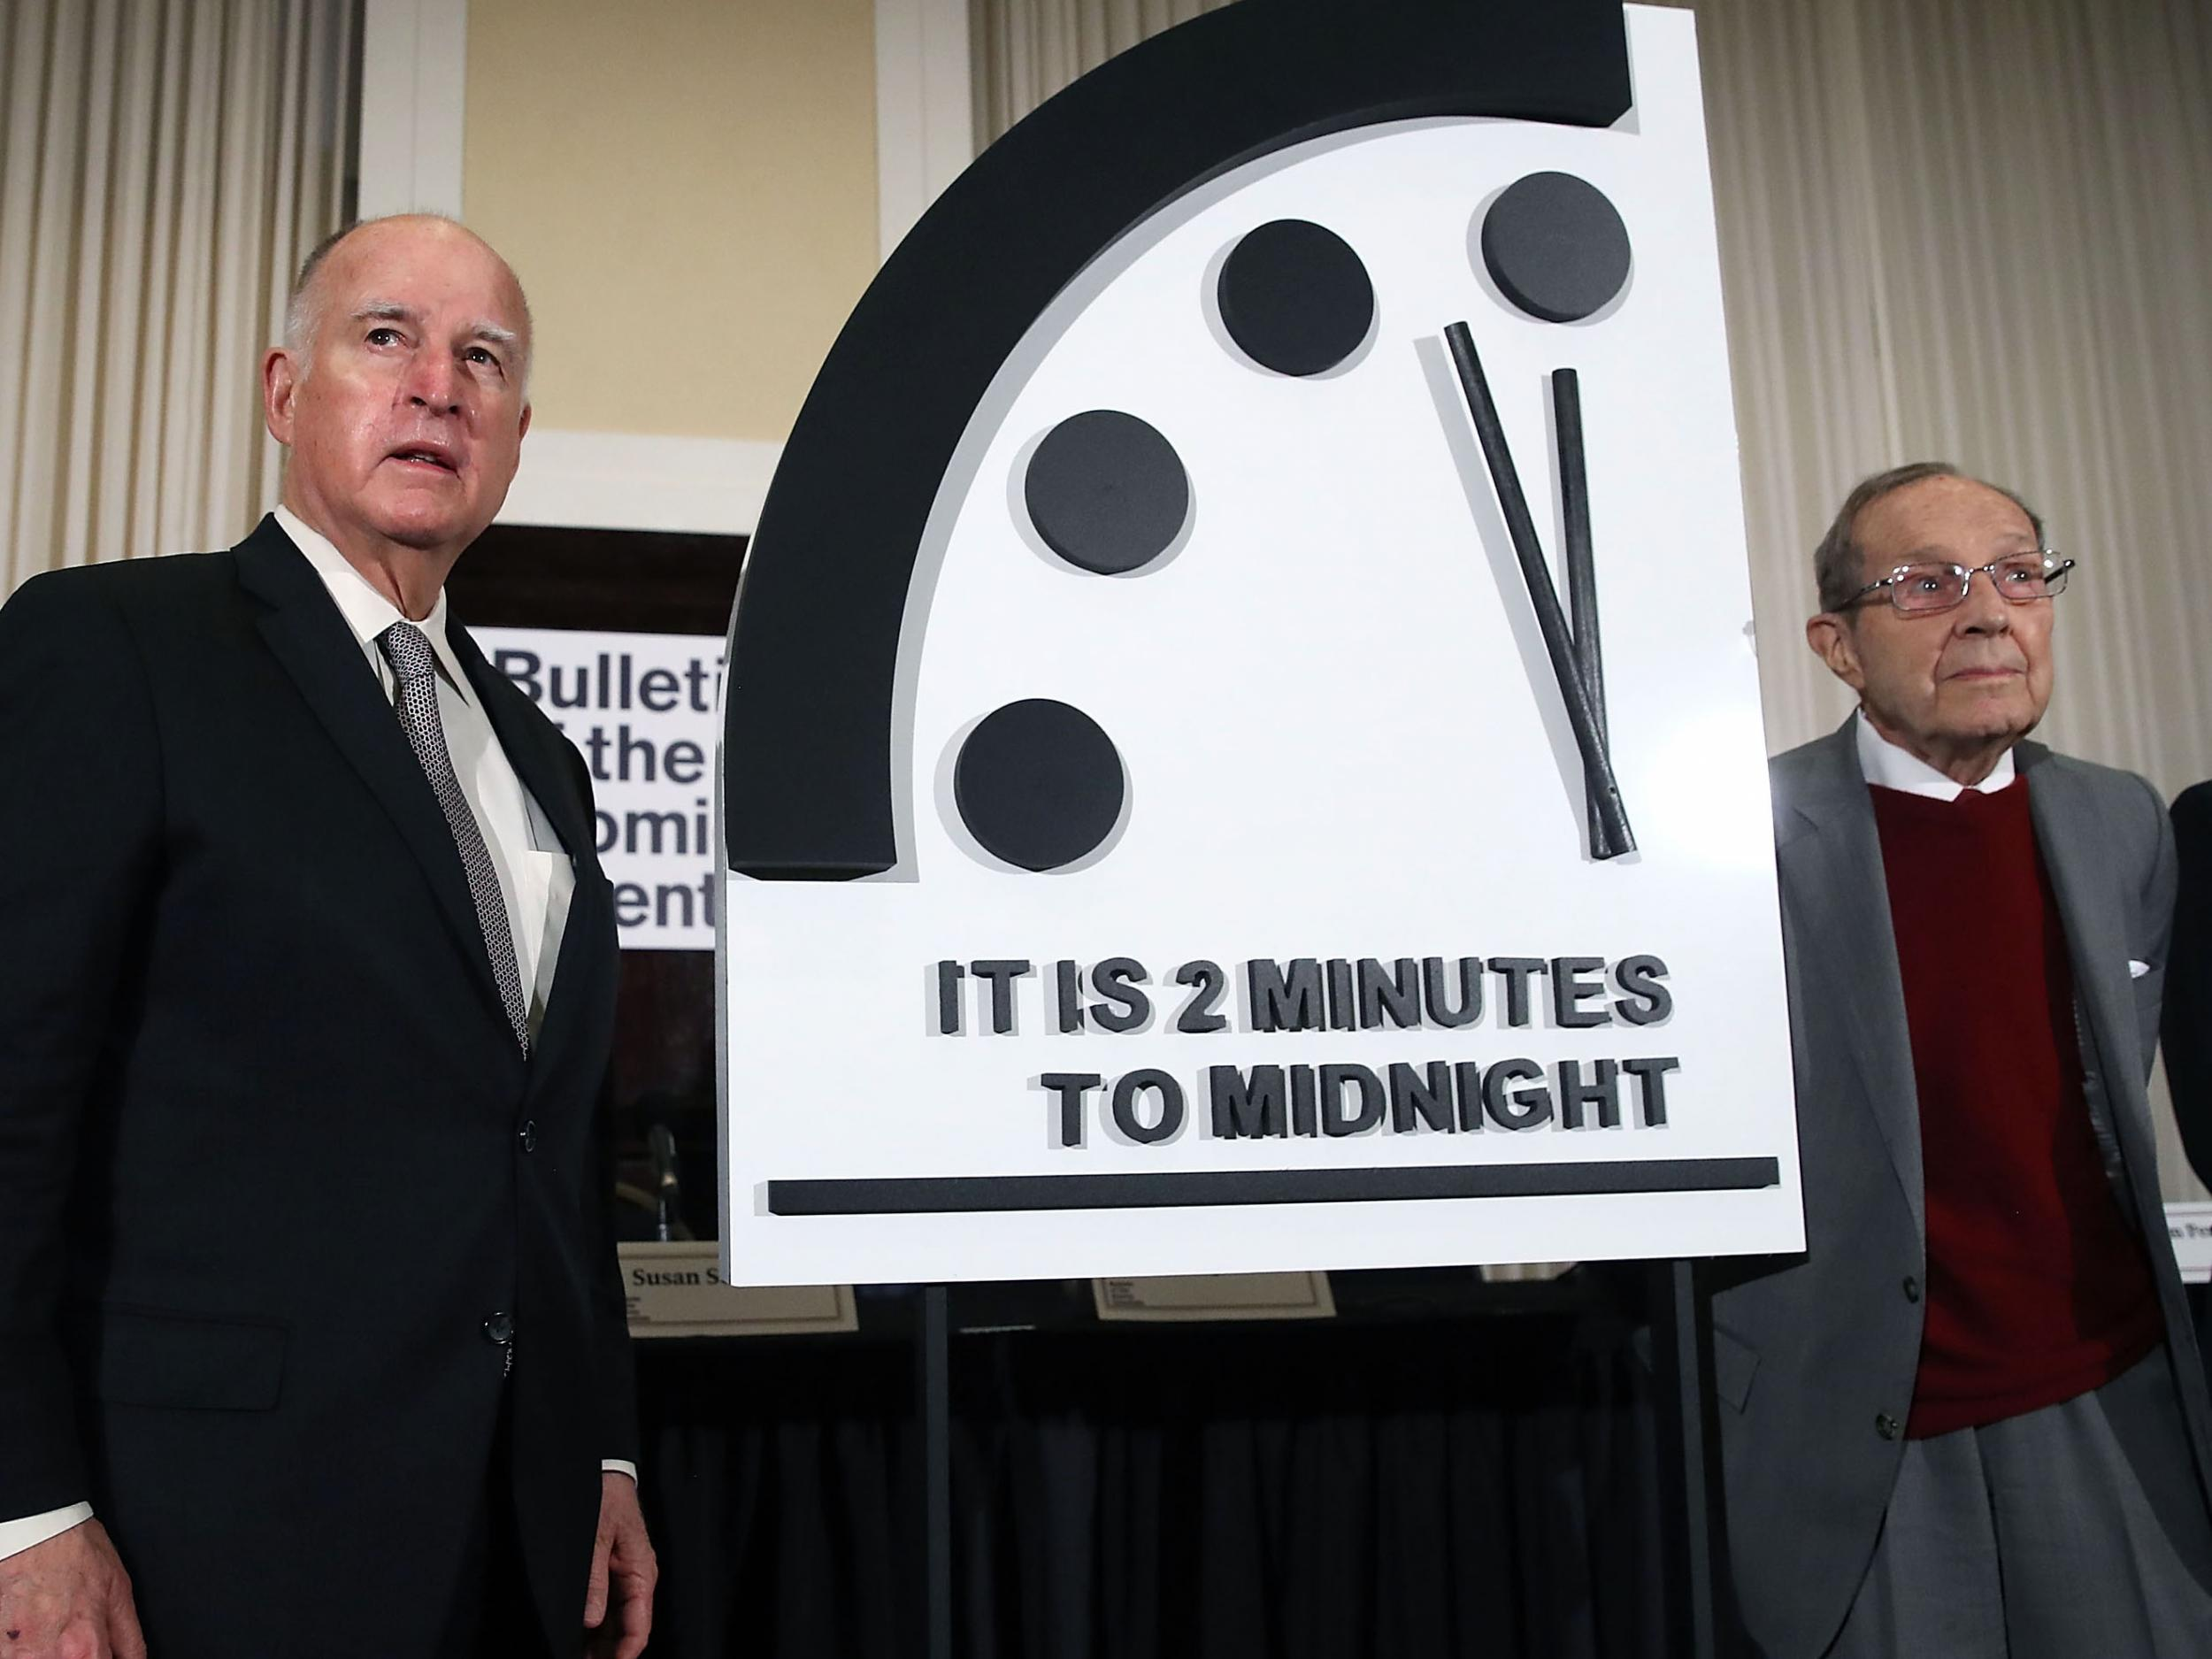 Doomsday clock announcement - live: Scientists to reveal how close the world is to 'midnight' amid worldwide tensions